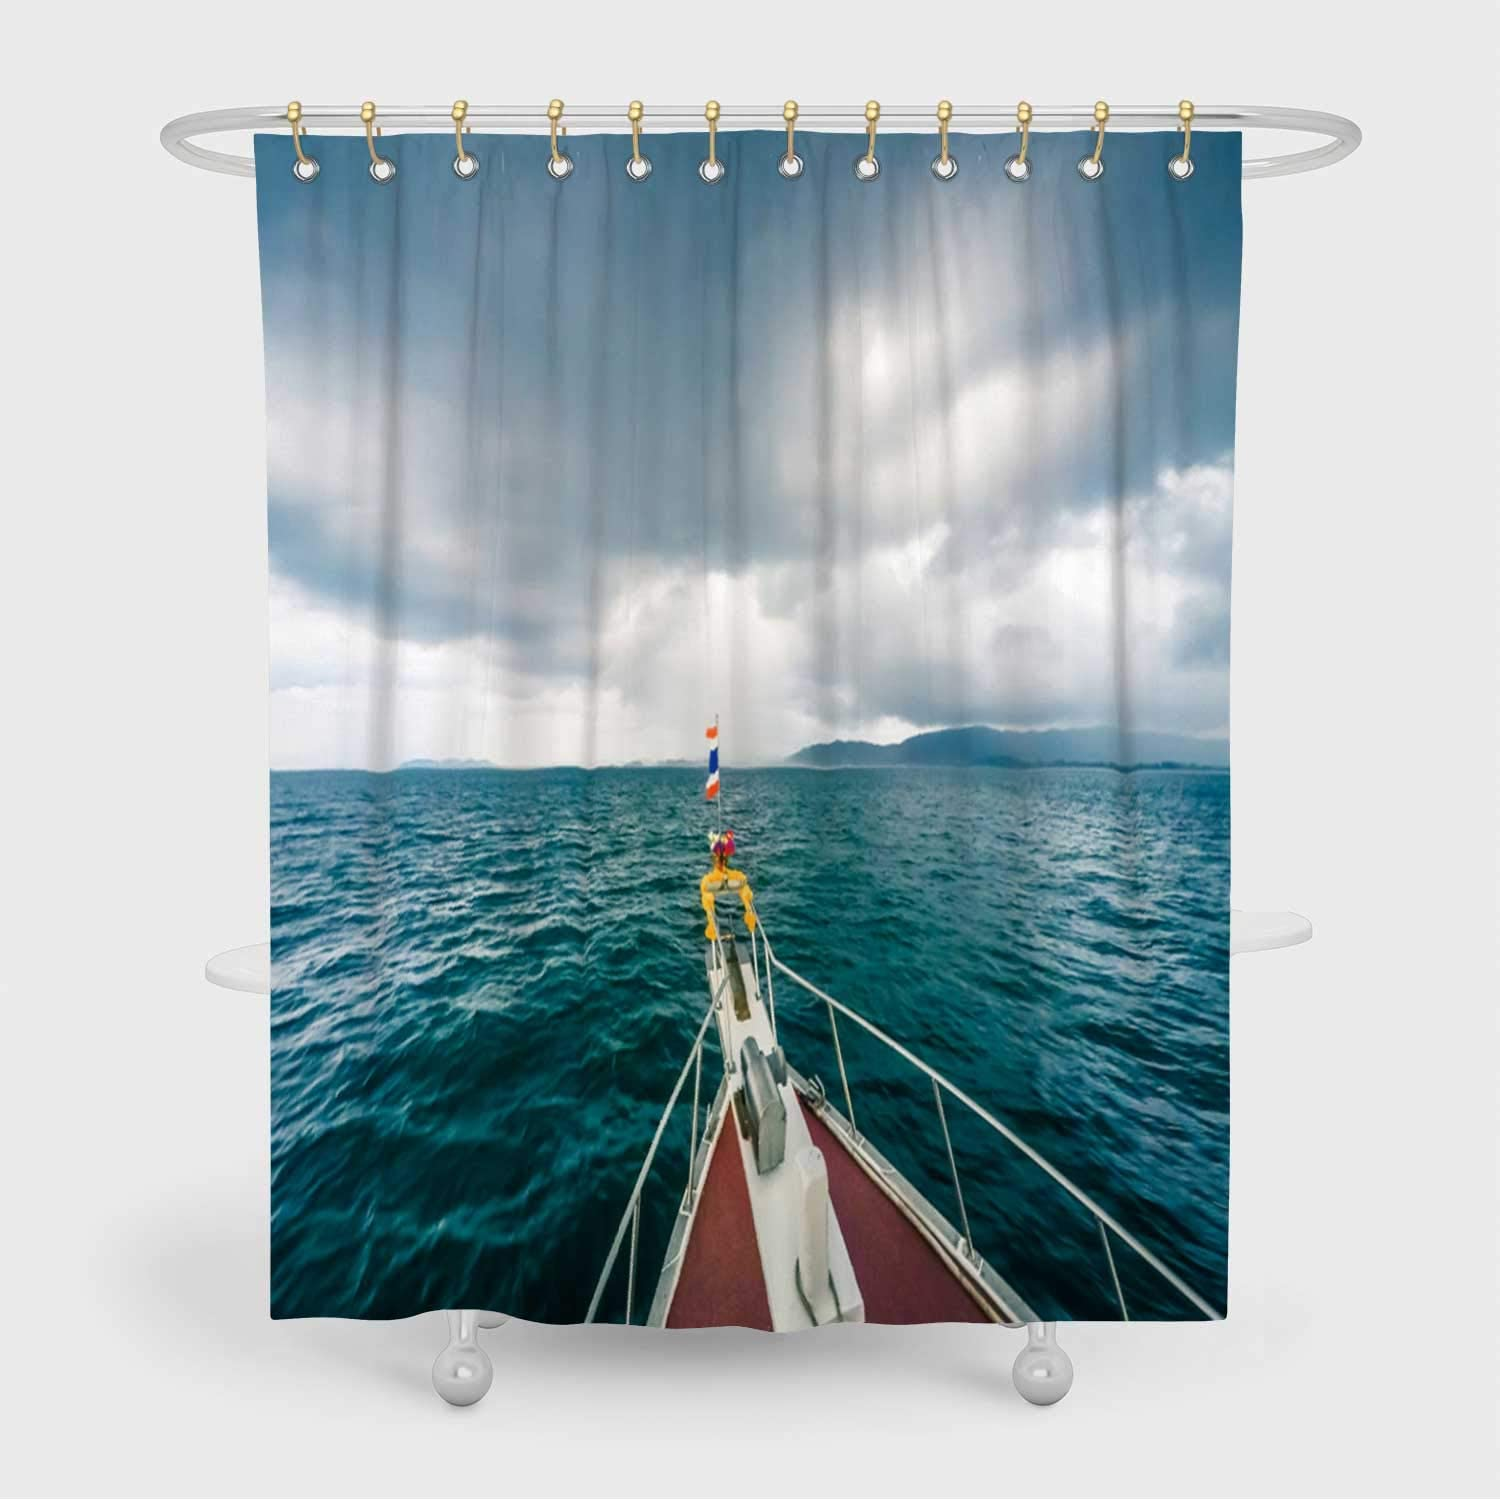 ALUONI Boat in Extreme Weather Tornado Shower Curtain,Hurricane with Hooks,72x96in